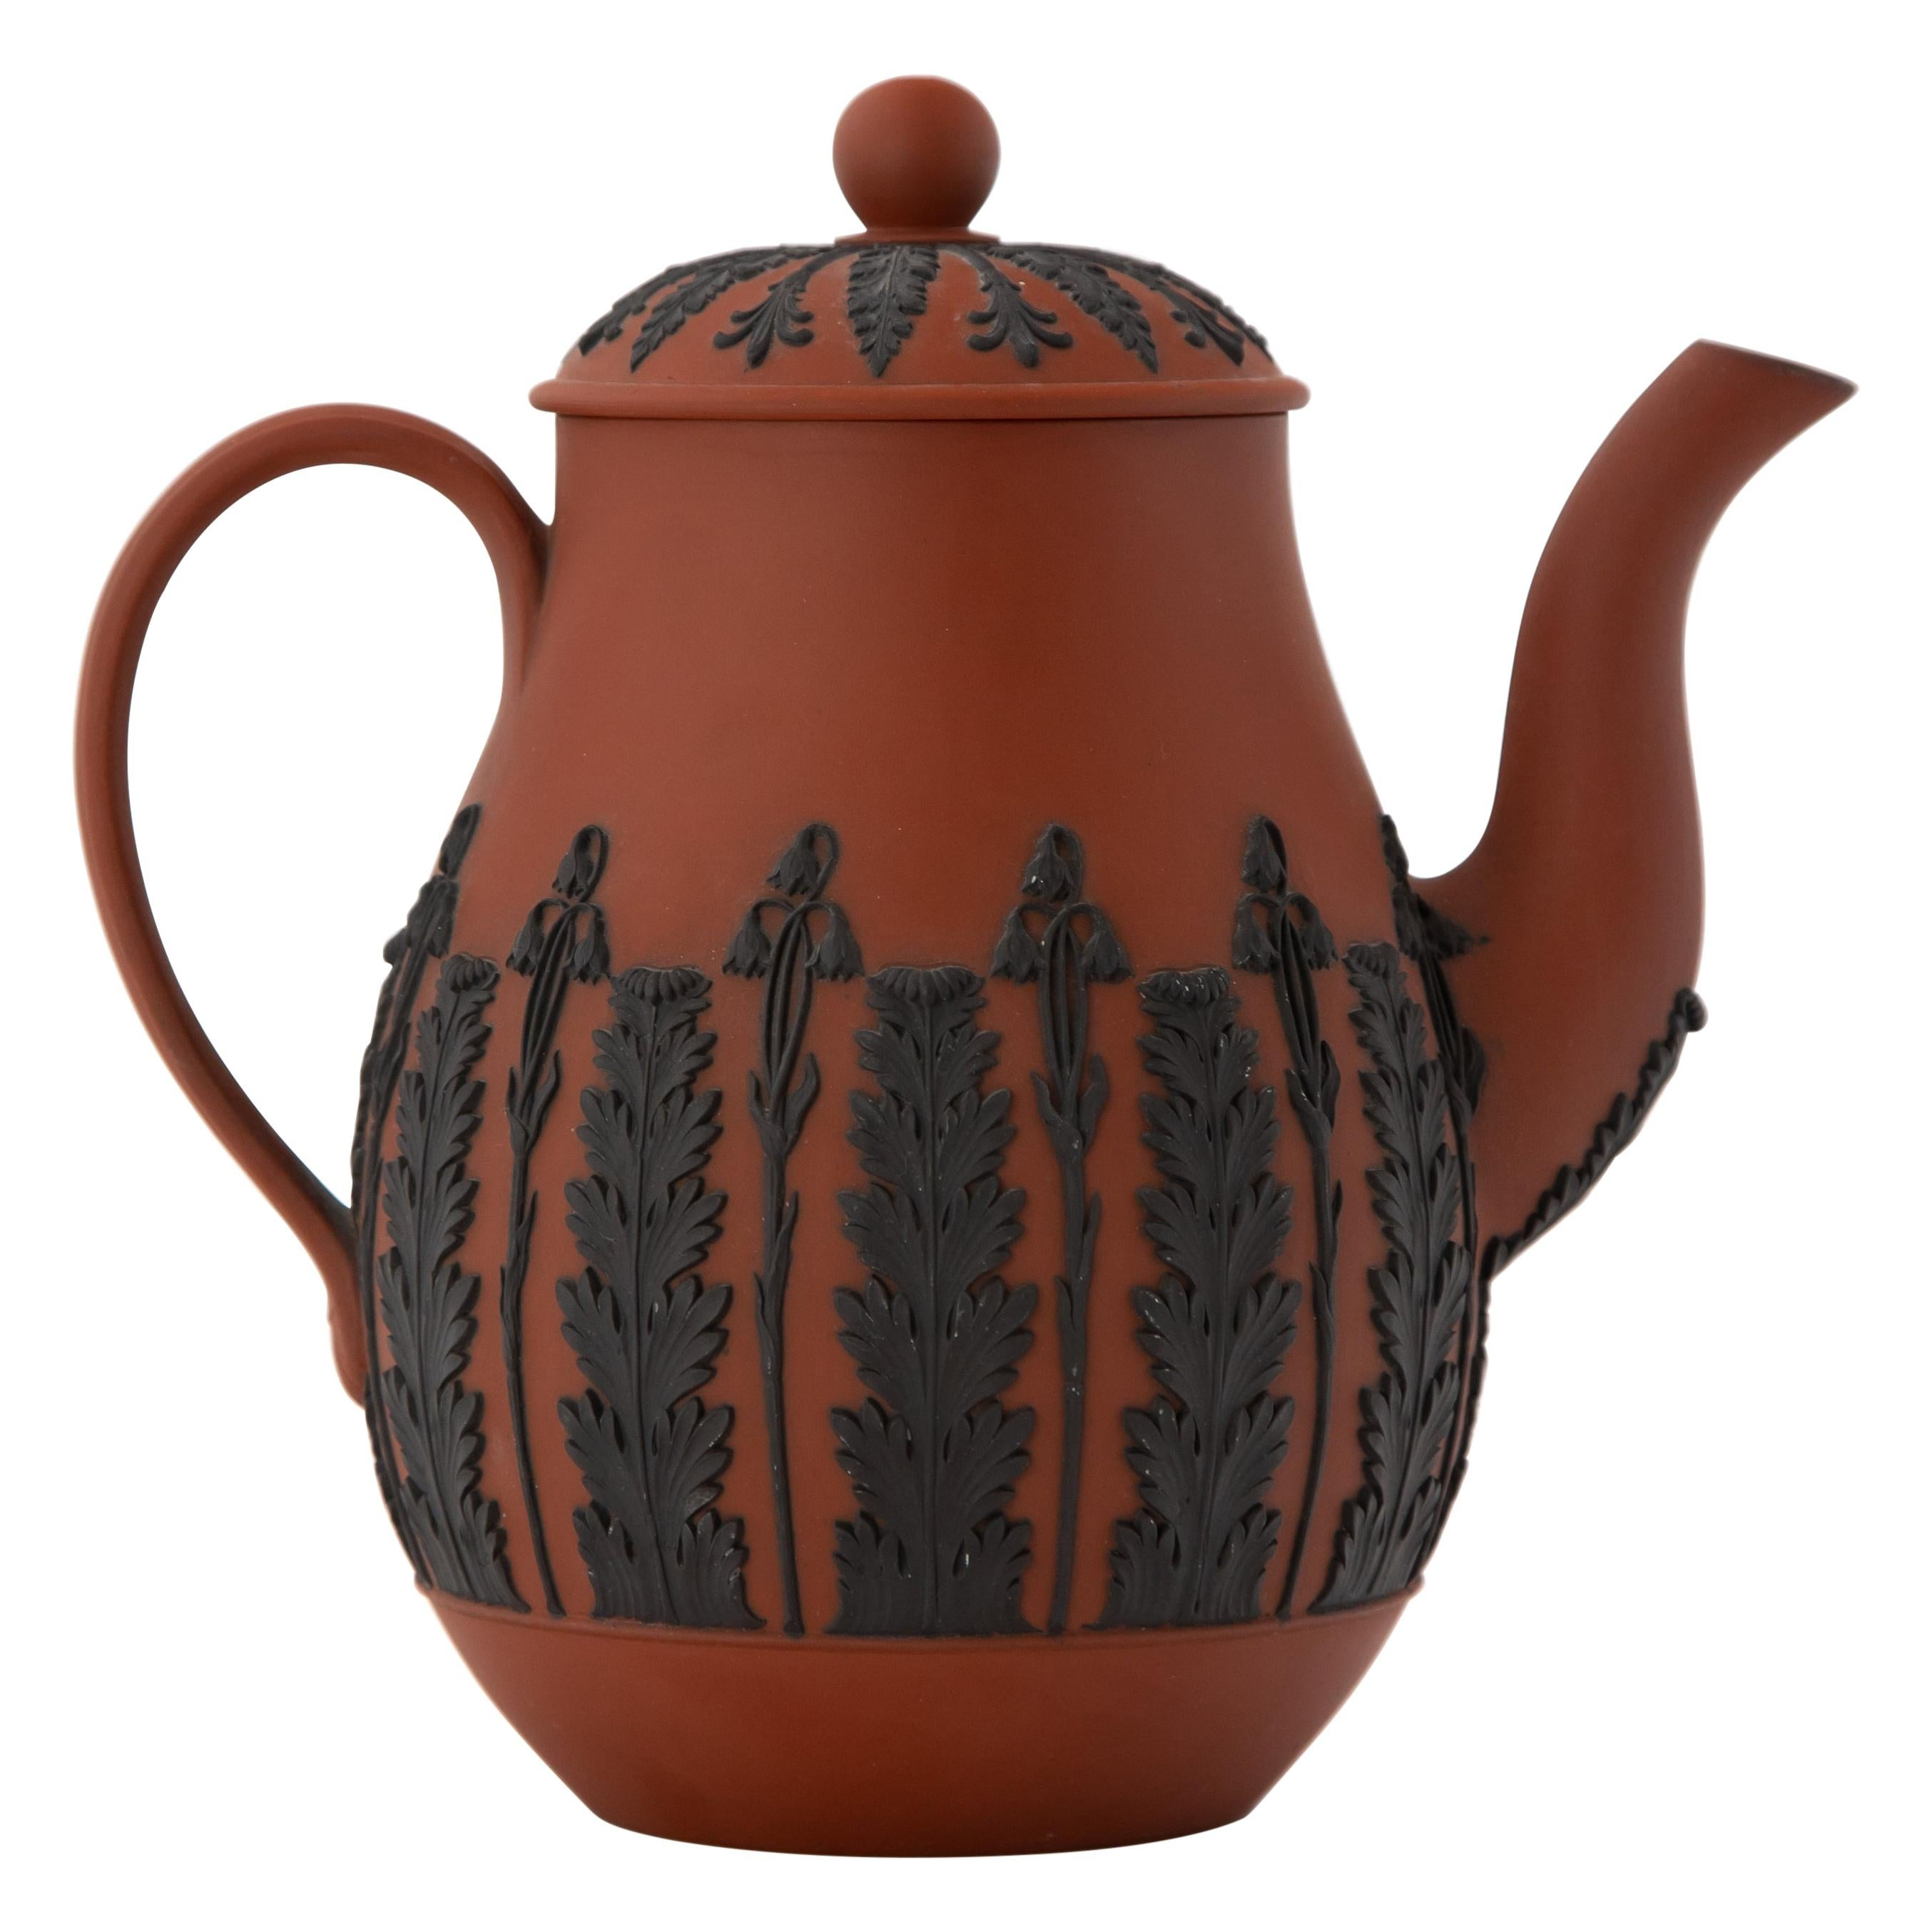 Early Wedgwood Egyptian Revival Neoclassical Rosso Antico Coffee Pot